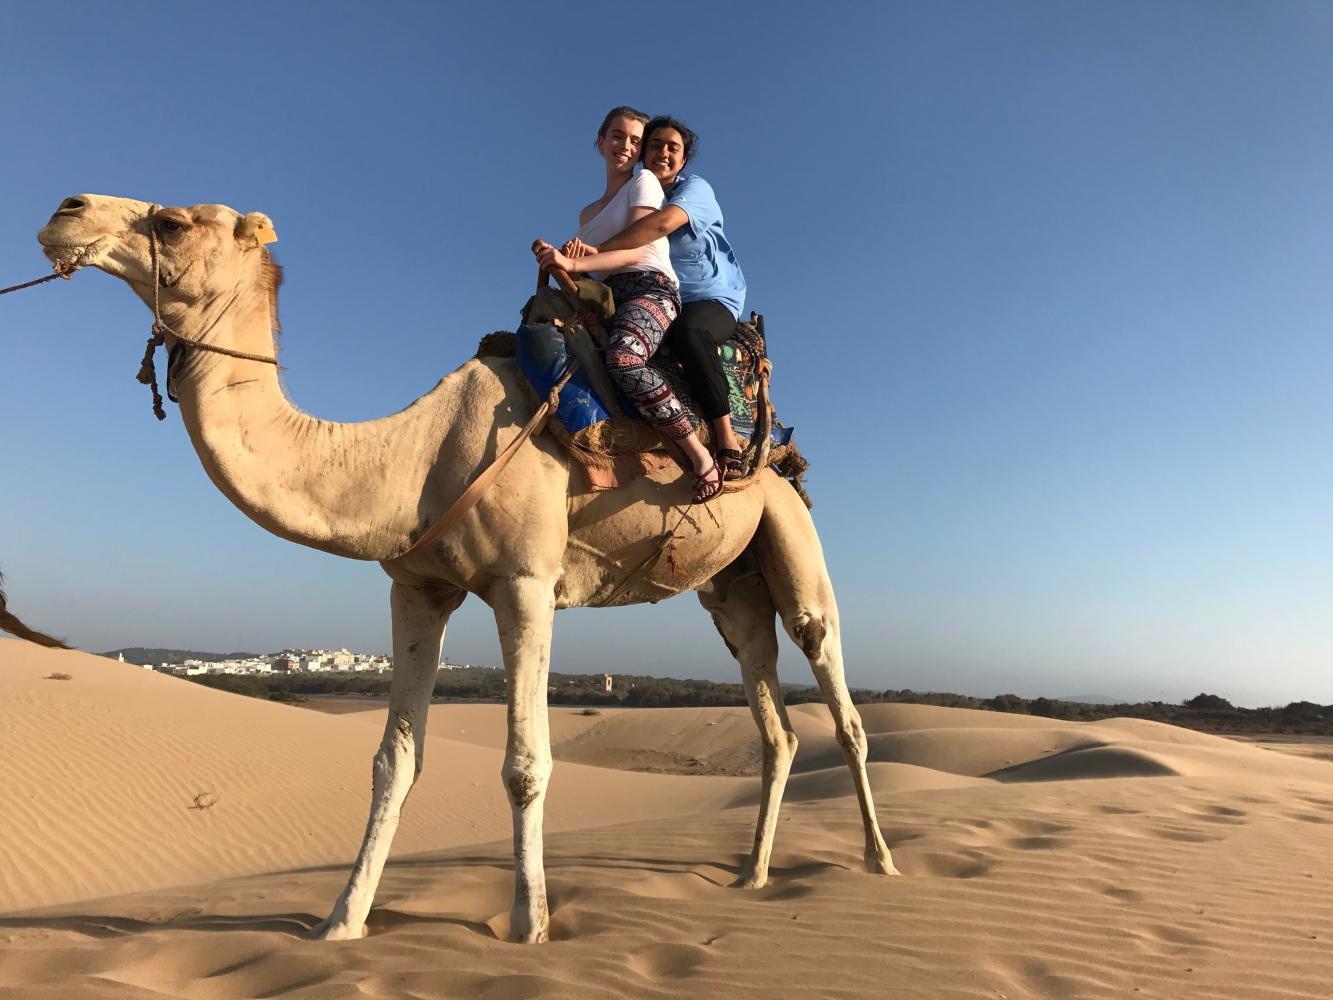 Senior Rowan Moreland's (front) aspirations to pursue national security and military intelligence brought her to Morocco on a scholarship funded by the state department to study Arabic language and culture.